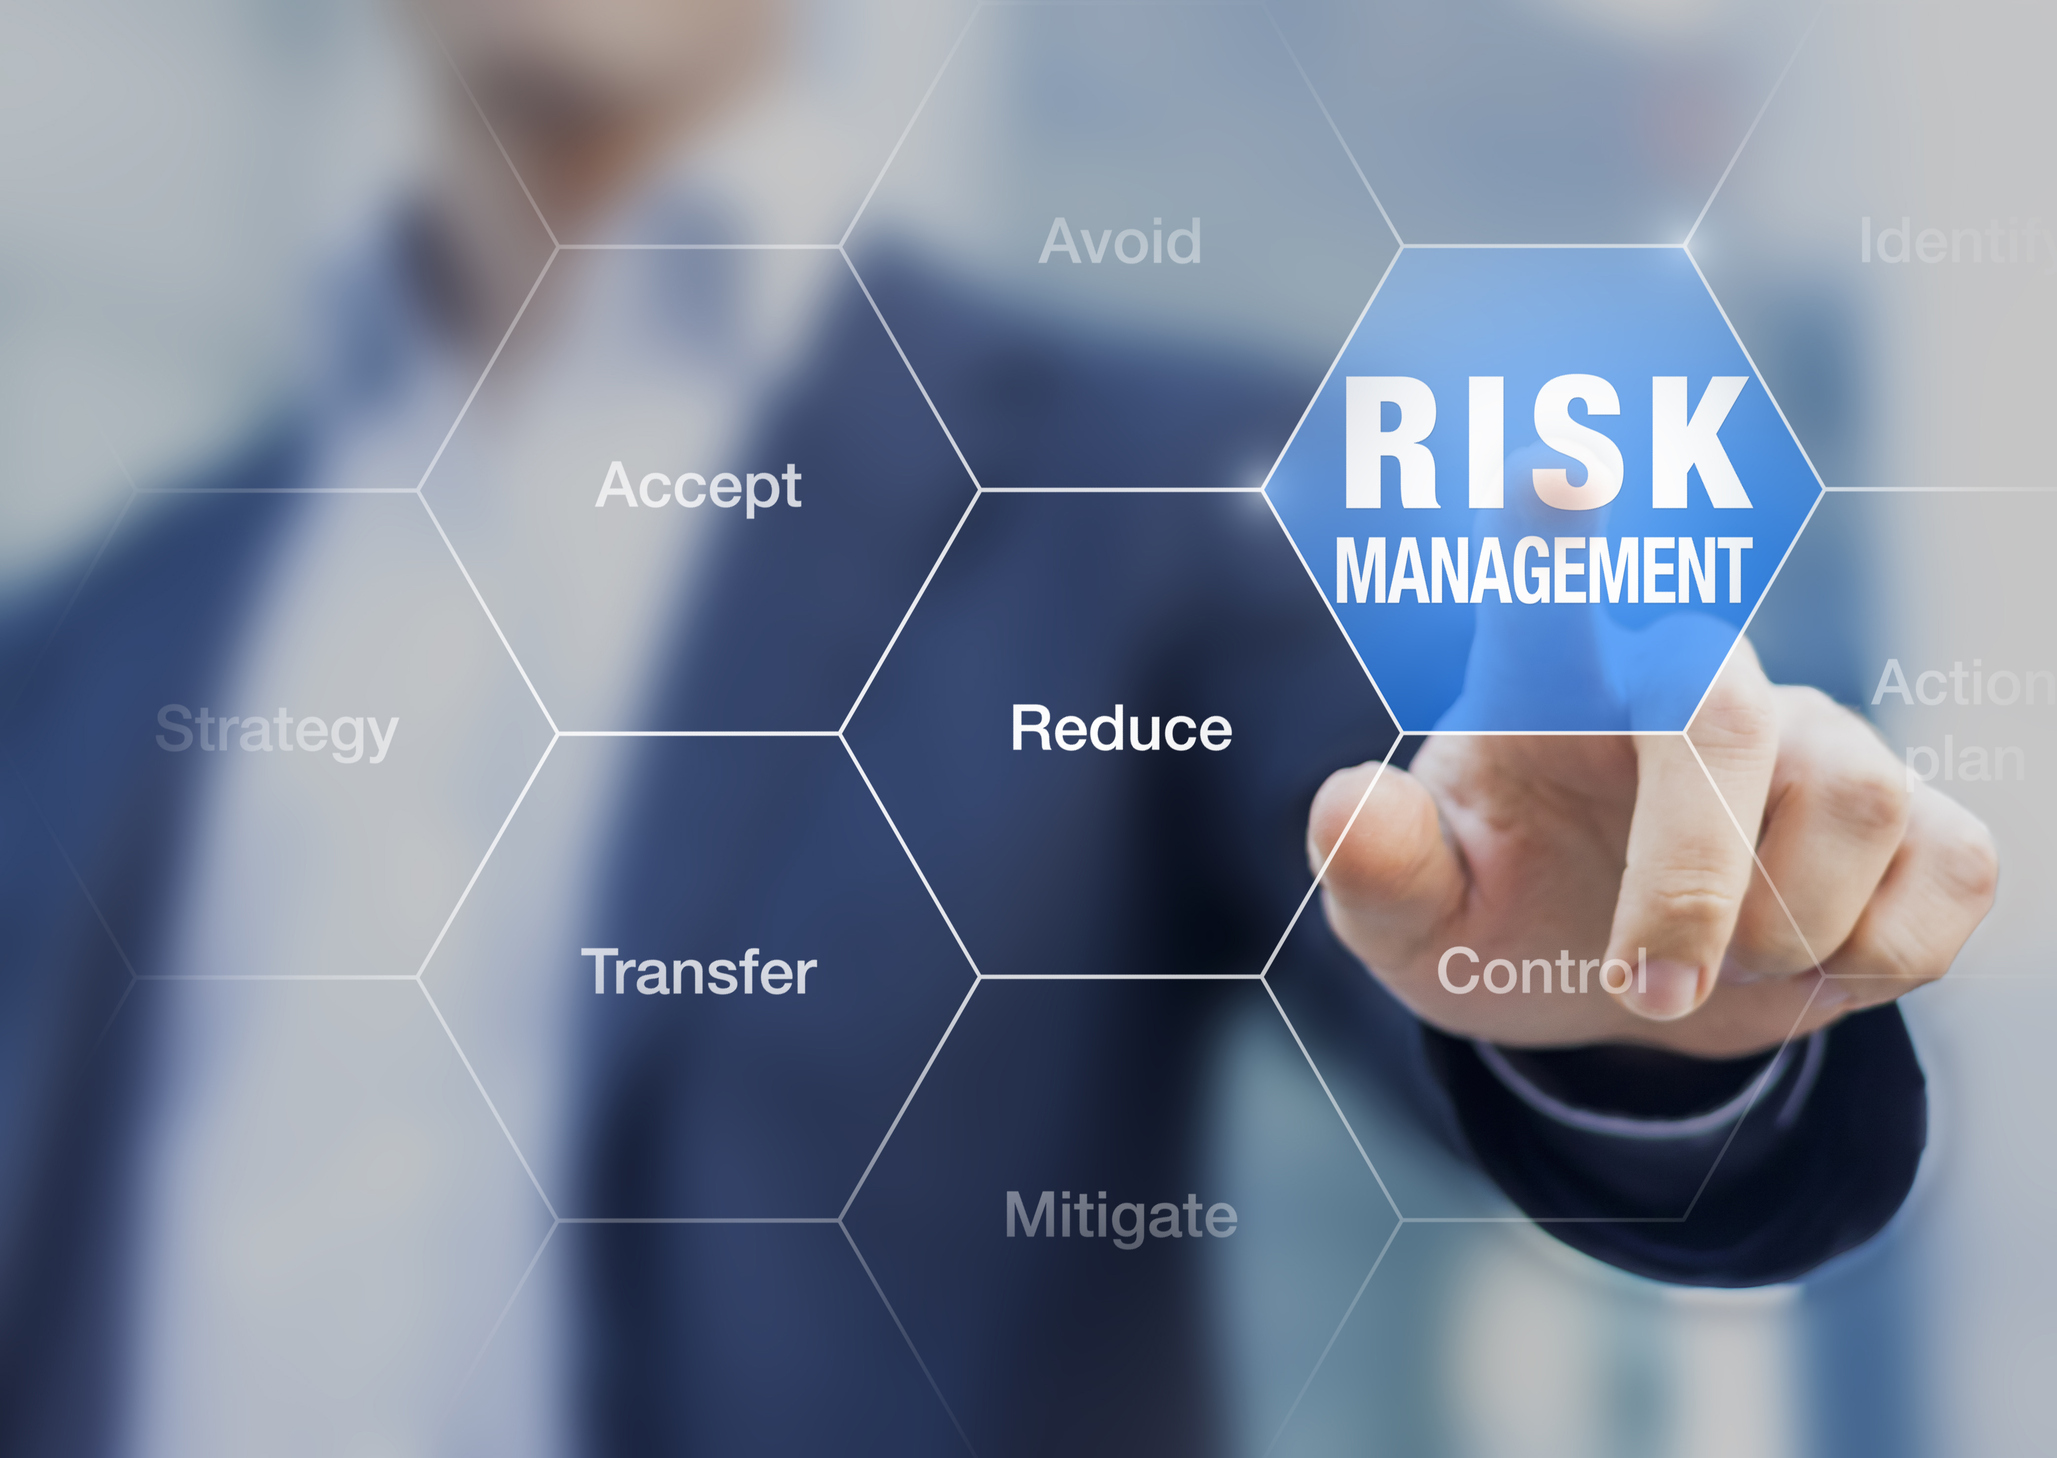 image of business man assessing risk